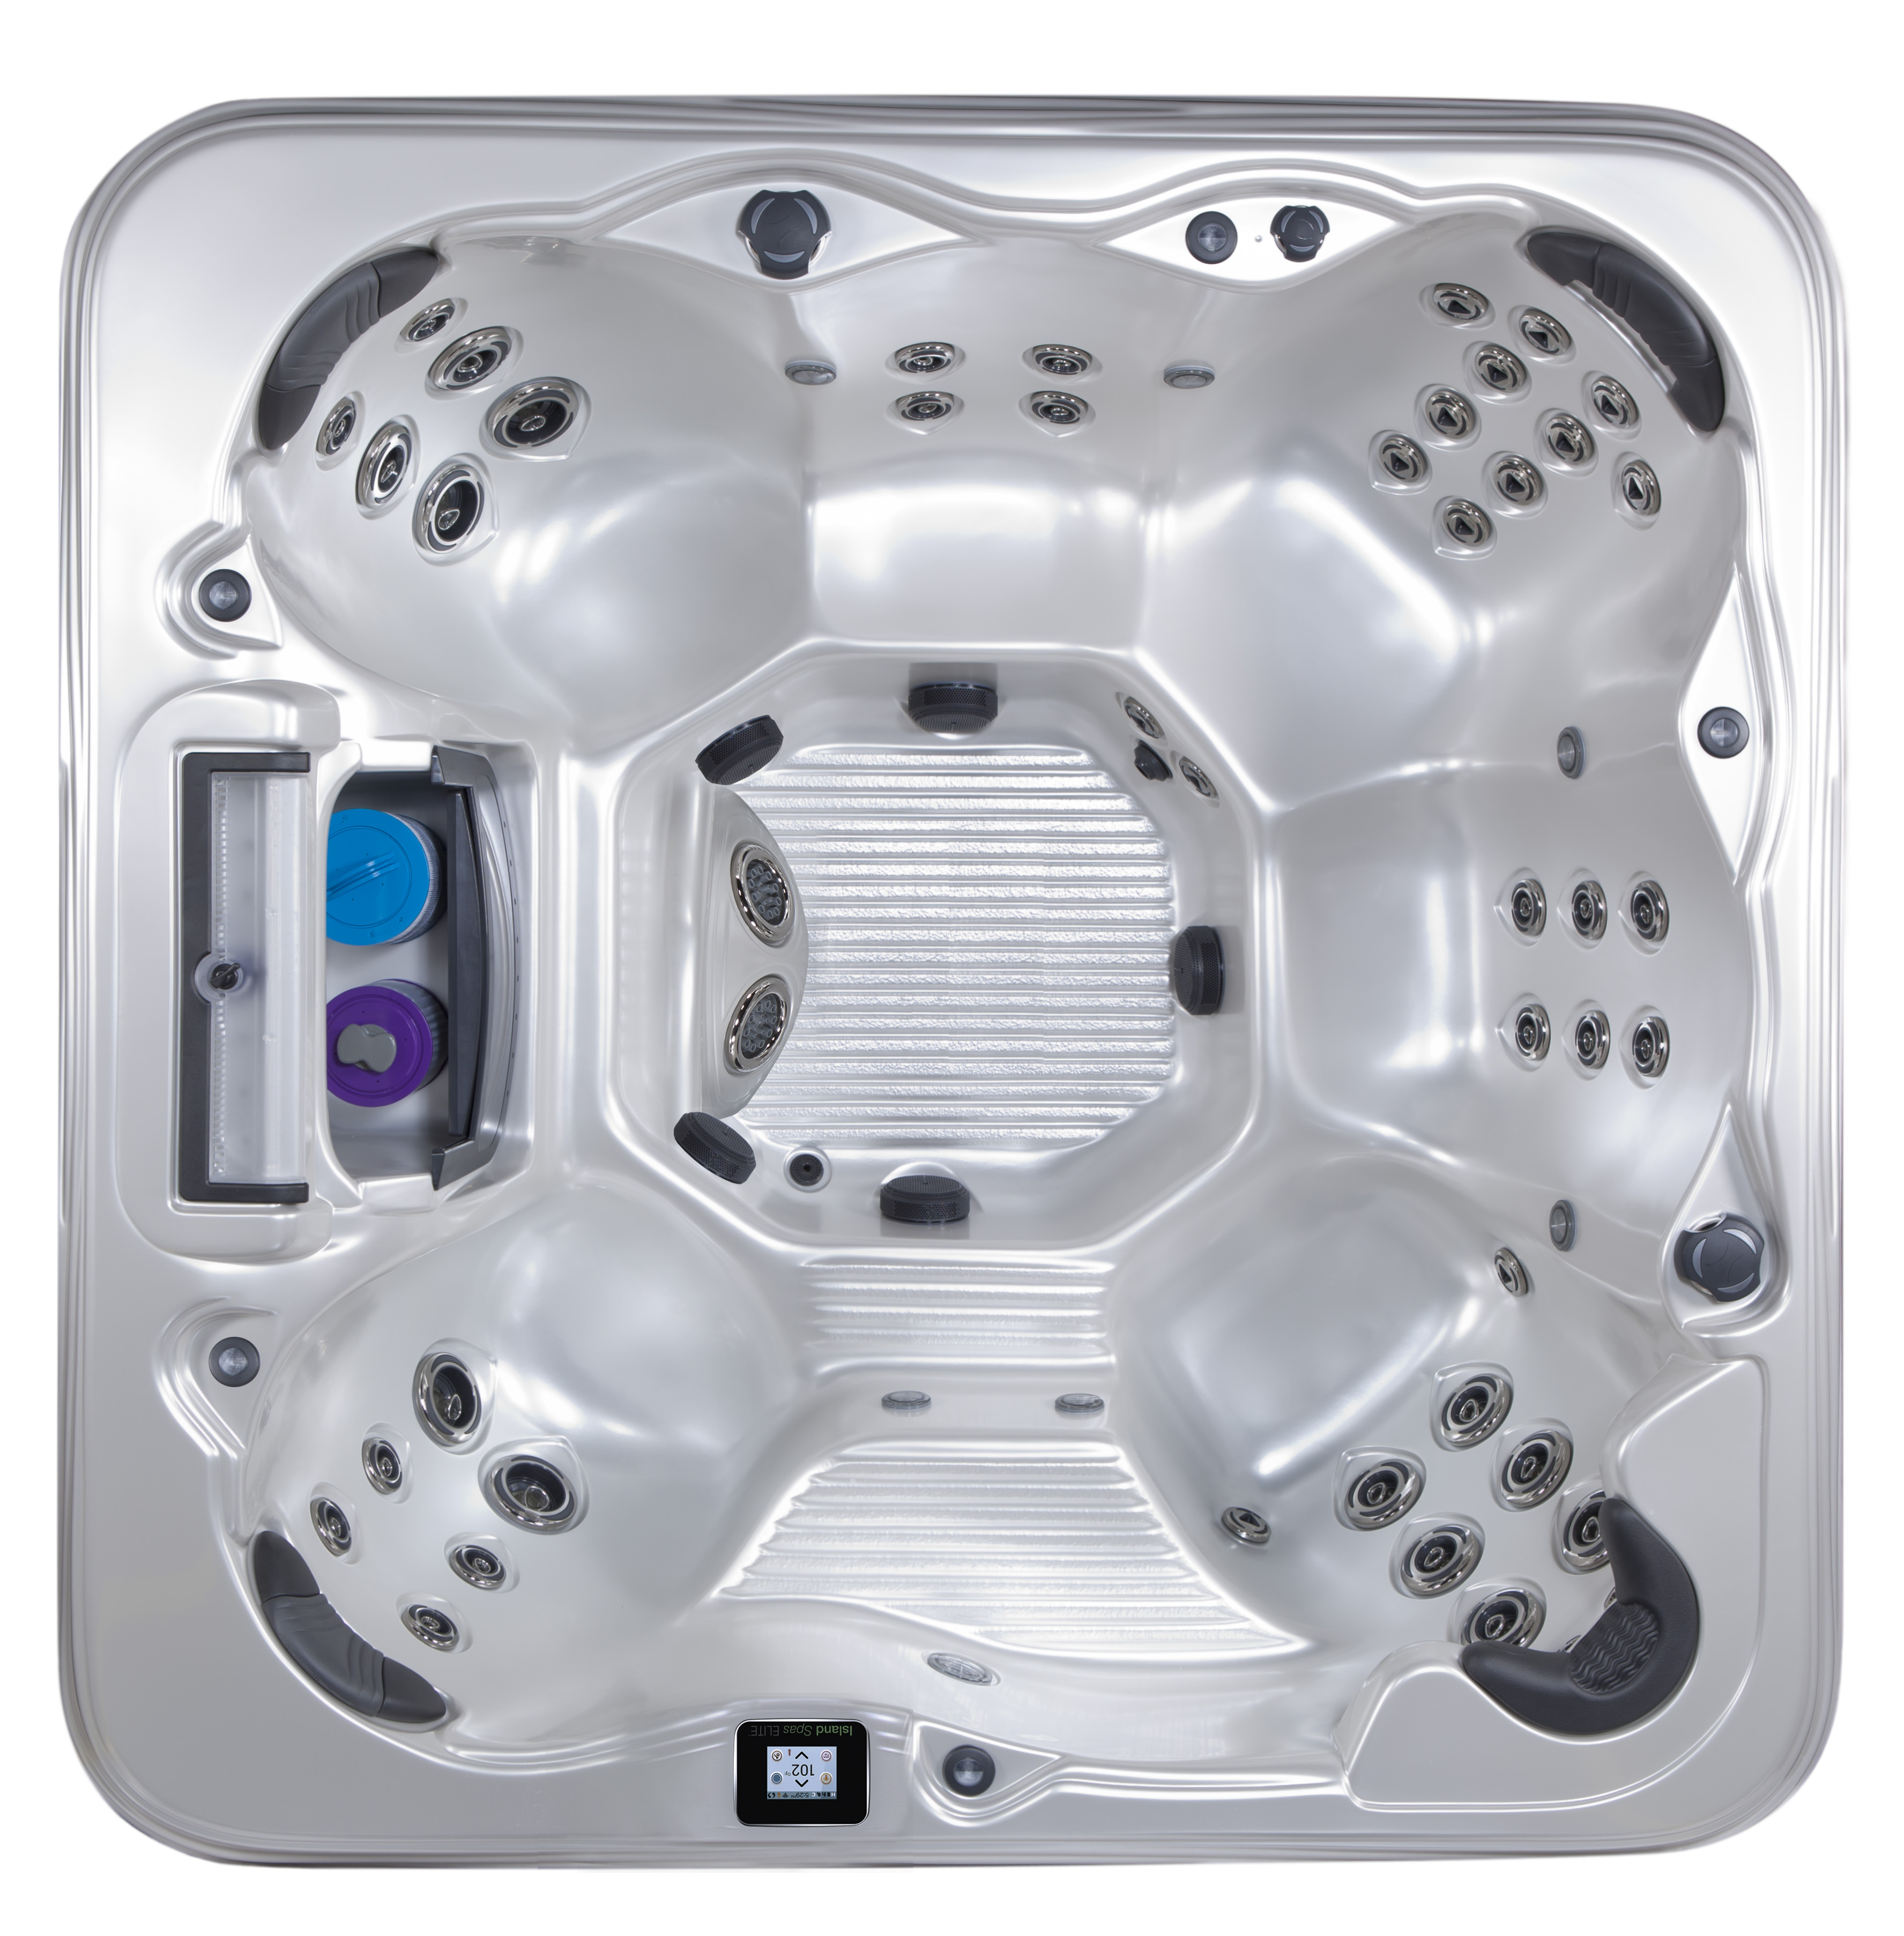 Captiva hot tub with 7 seats and up to 52 jets